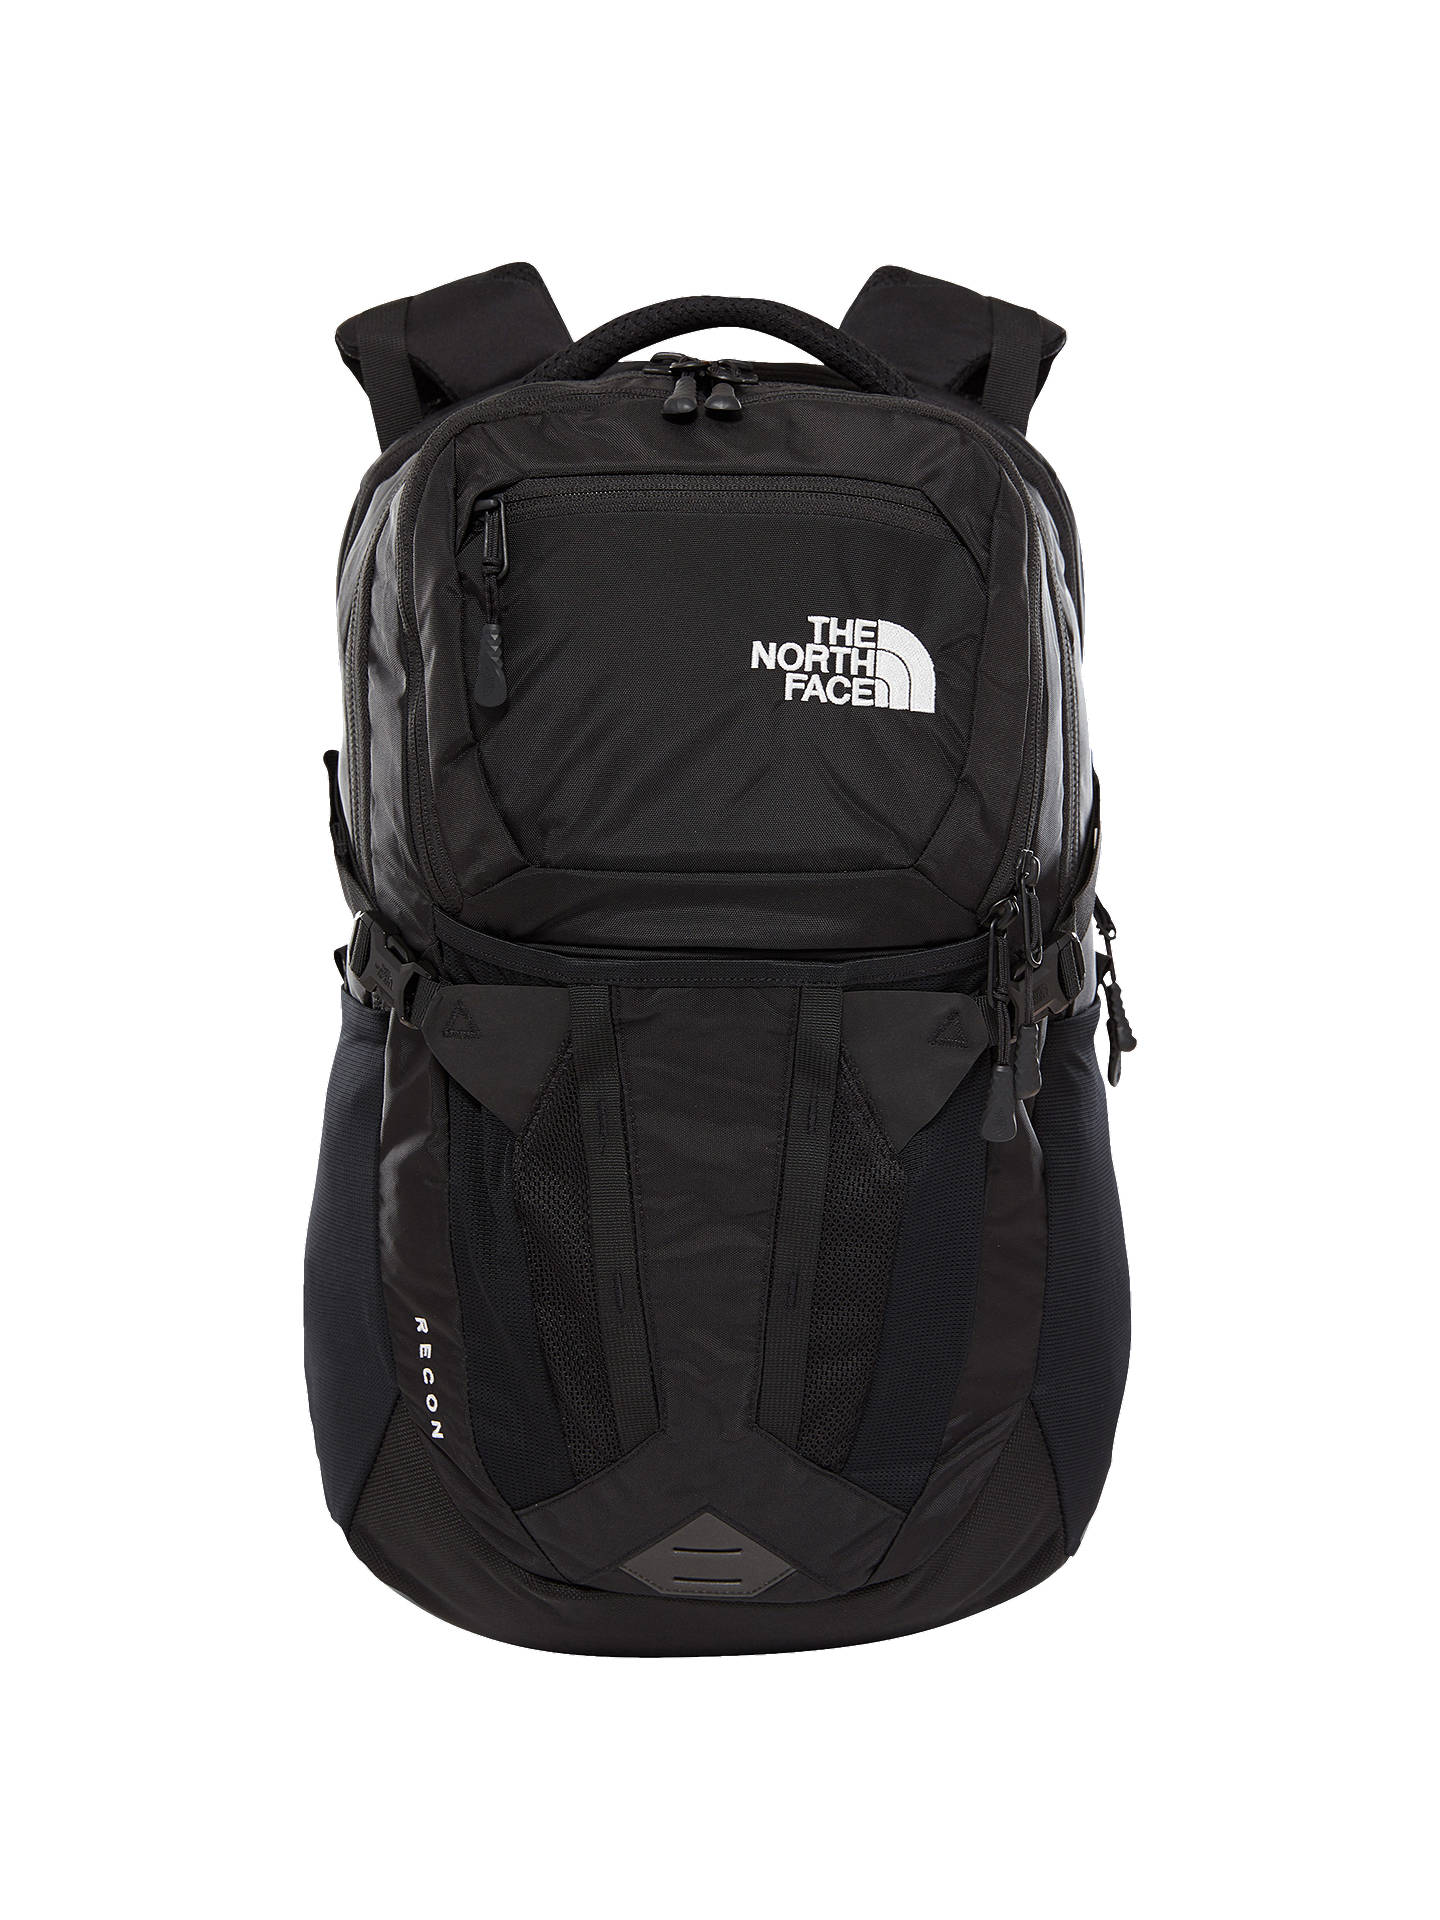 507d258ed The North Face Recon Day Backpack, Black